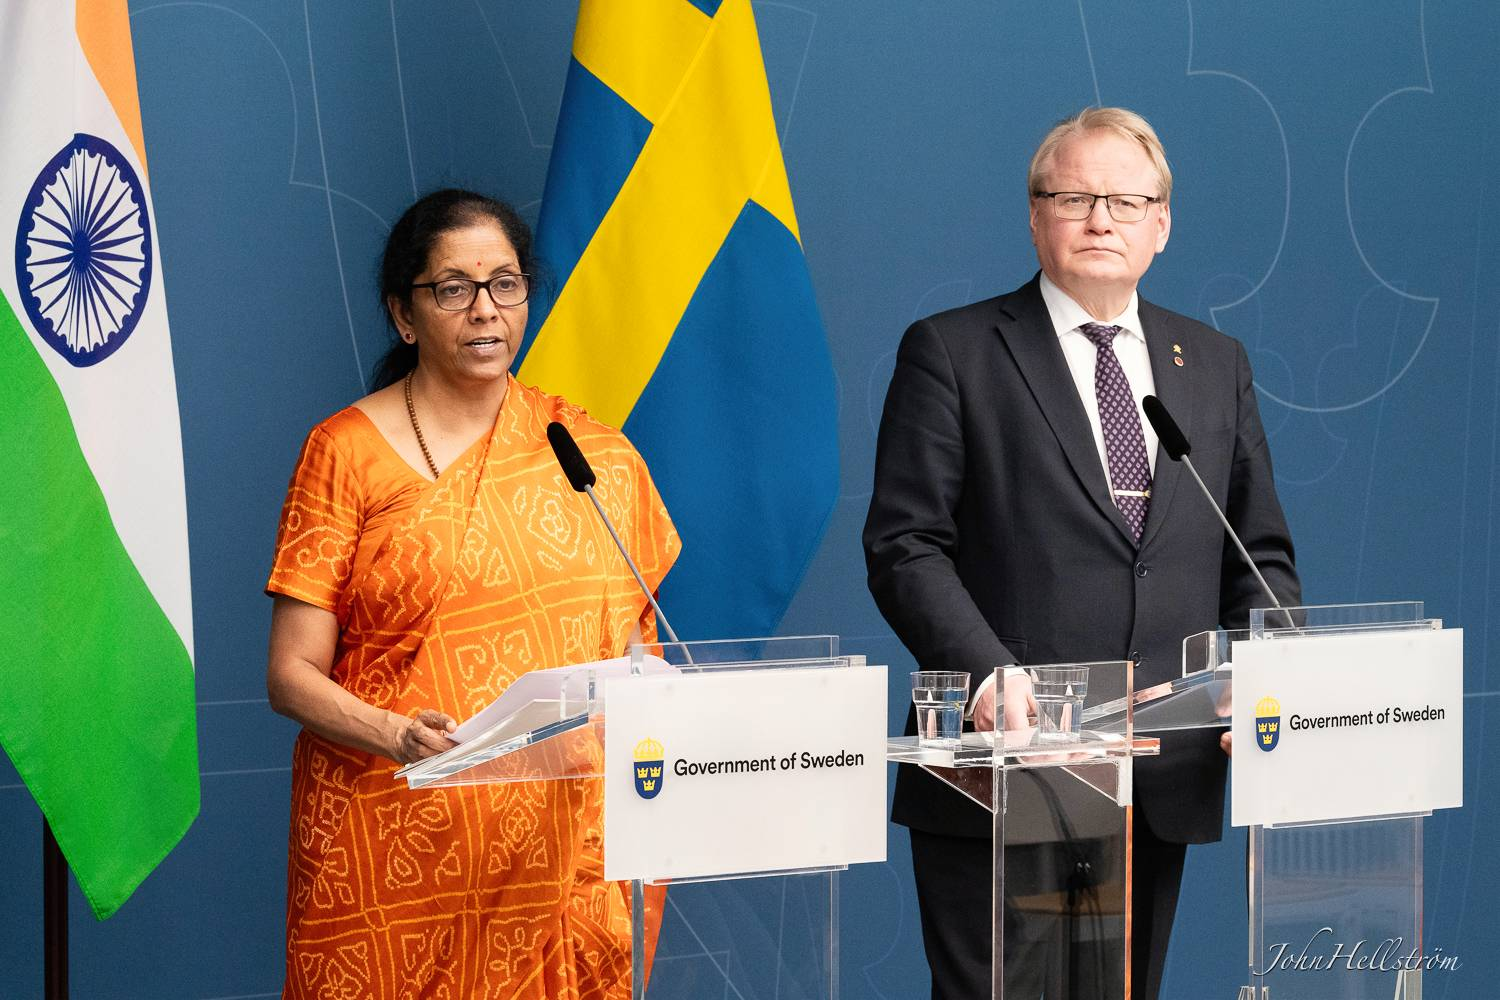 Embassy-of-India-Defence-Minister-Sweden-105.jpg